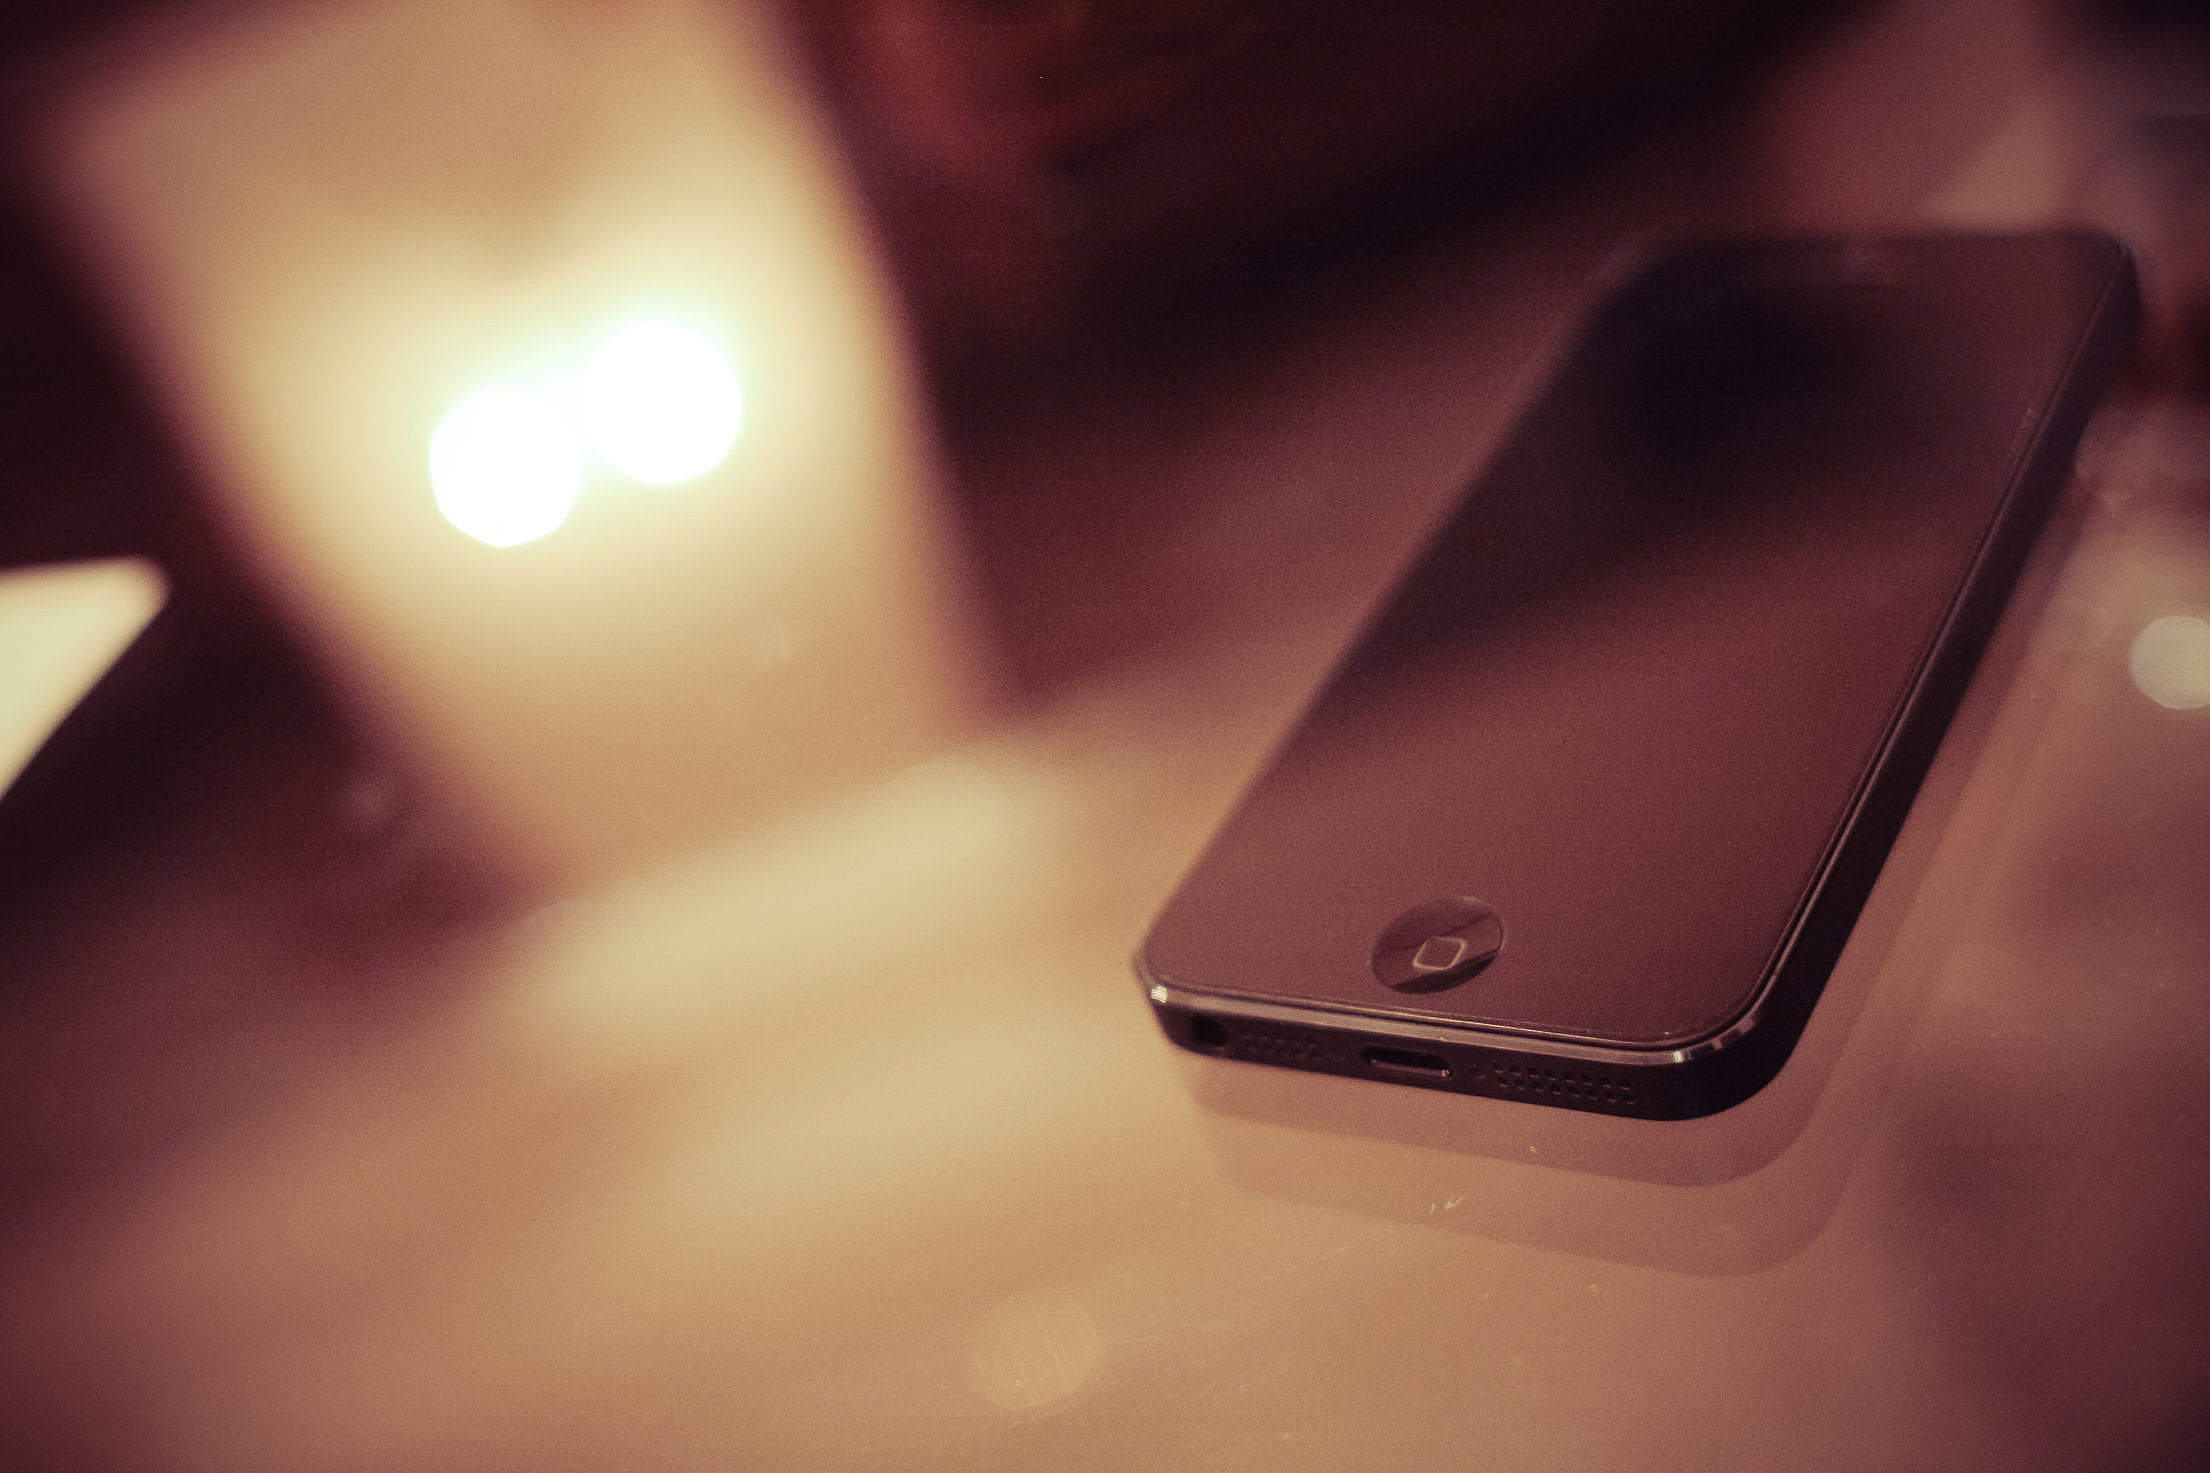 iPhone 5 on a Glass Table Free Stock Photo